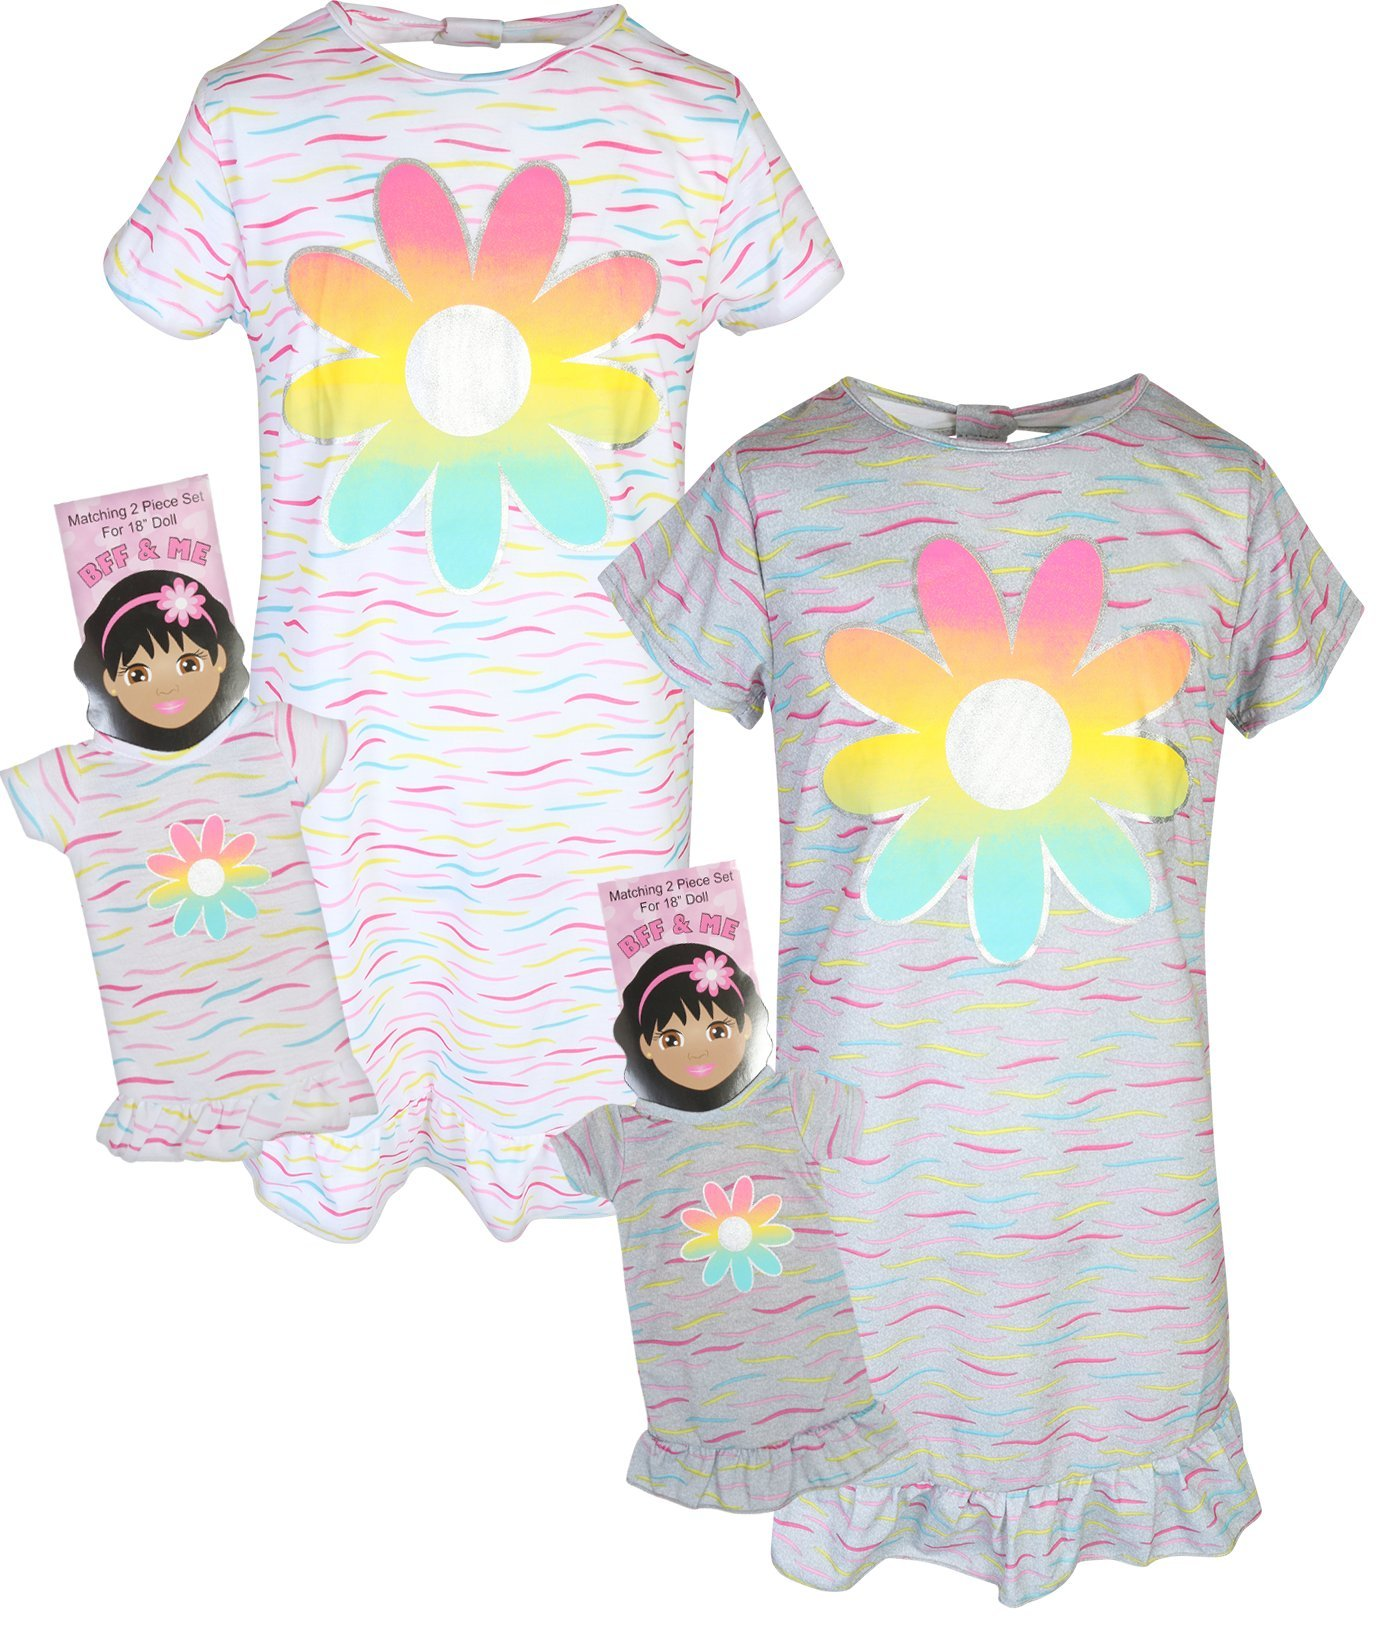 BFF & ME Girls Nightgown Pajama Set with Matching Doll Pajama (2 Pack), Flower, Size 10/12'